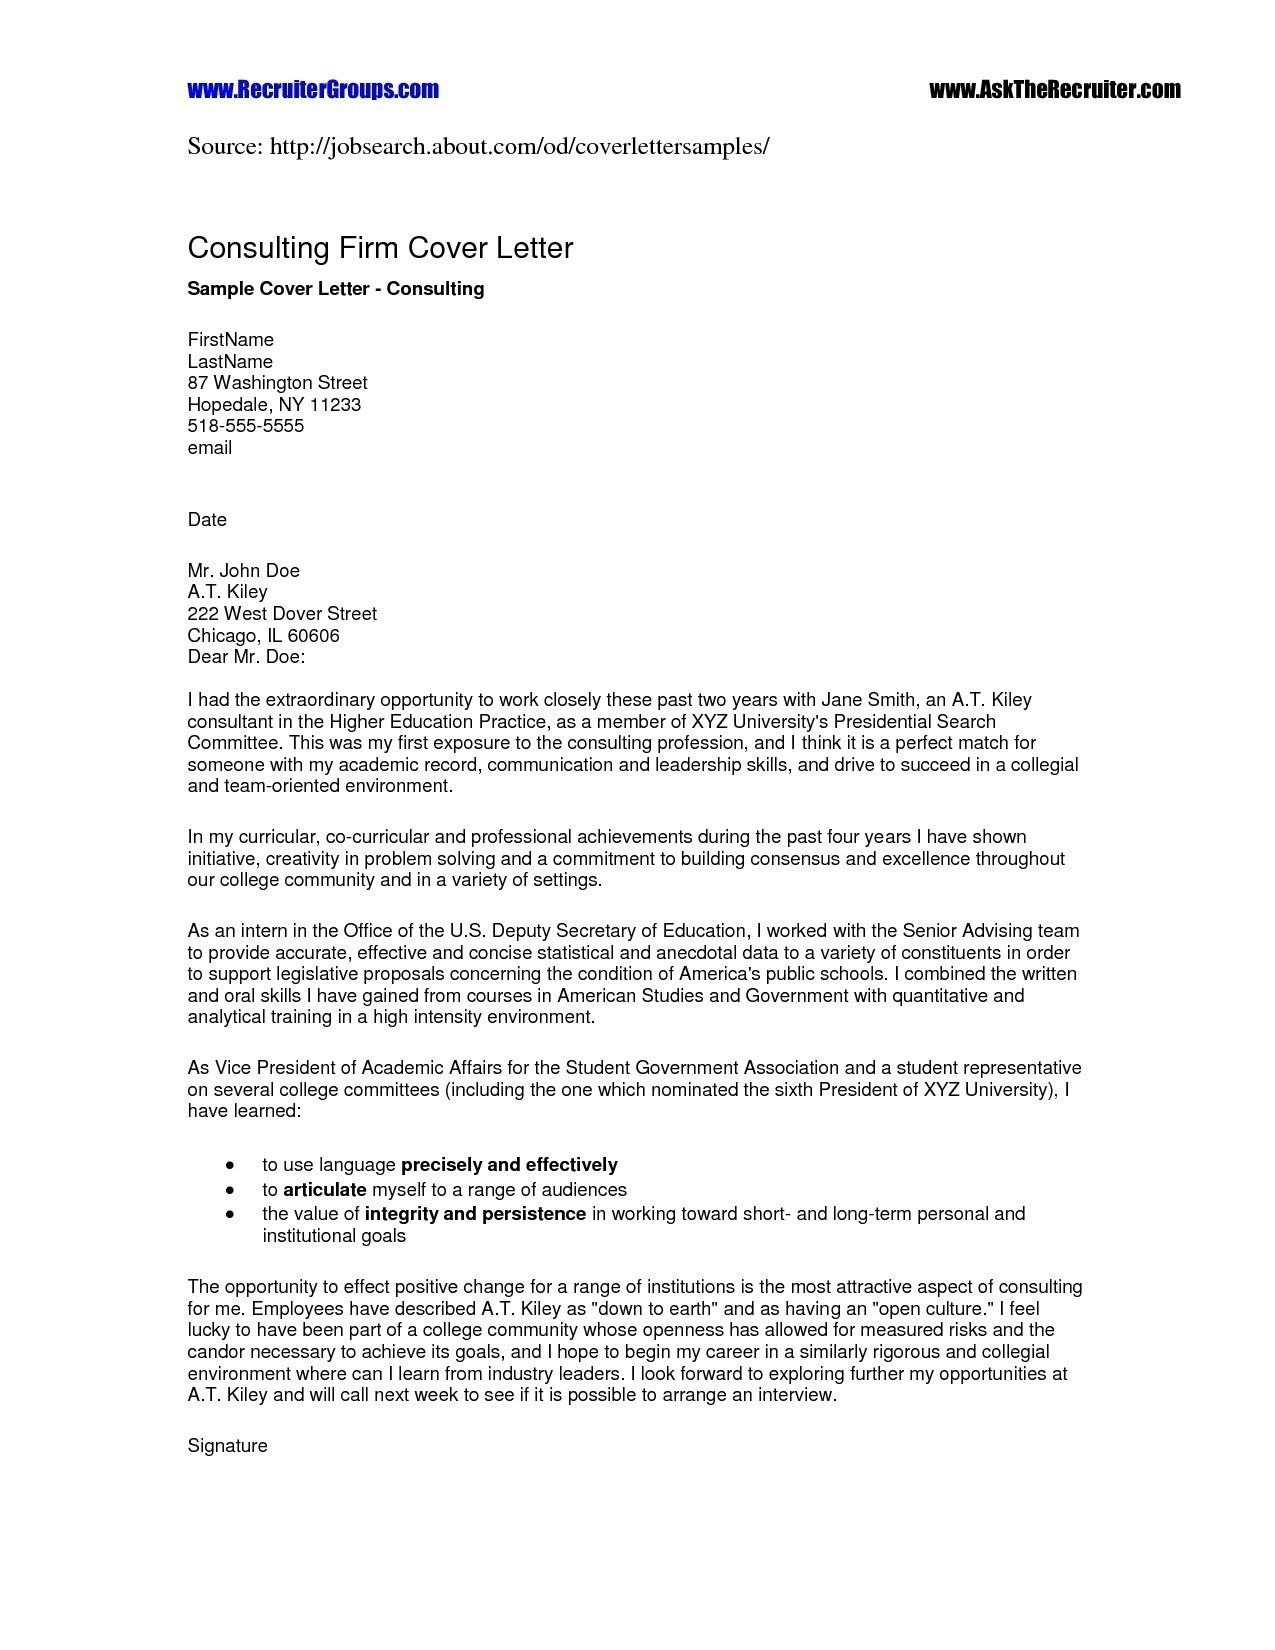 Simple Job Offer Letter Template - How to Write Job Fer Letter Fresh Job Fer Letter Sample Best Job